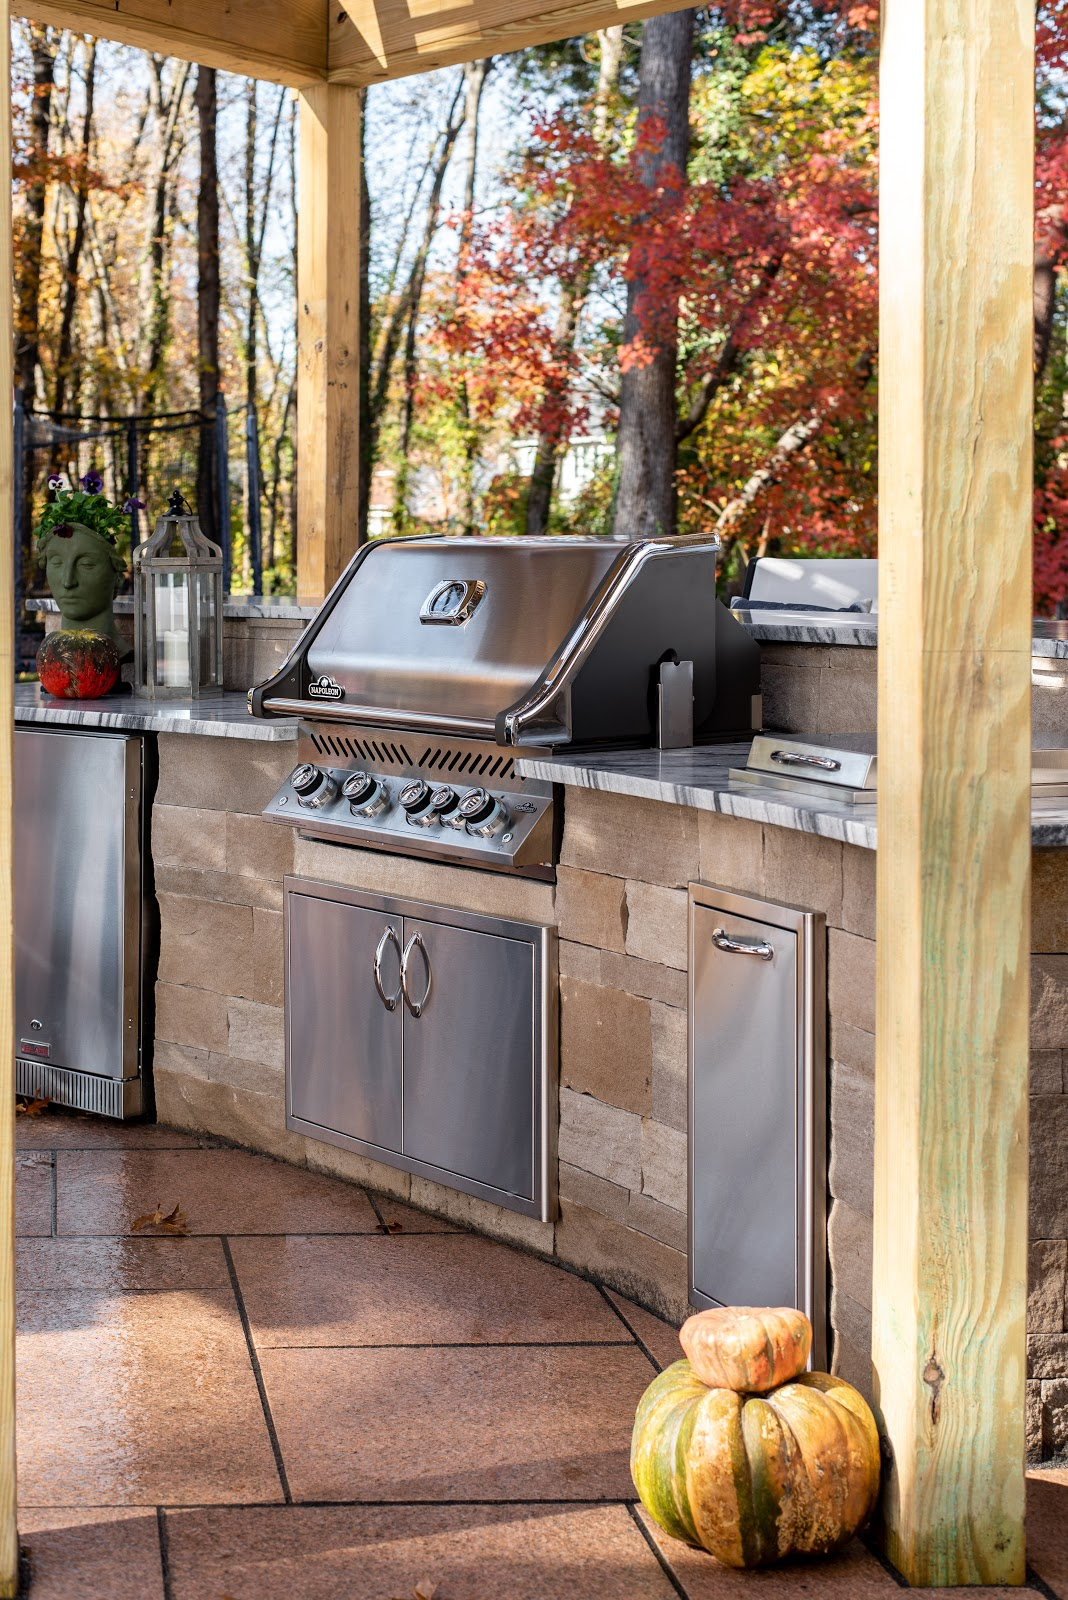 photo of the outdoor grill accompanied by Polycor stone